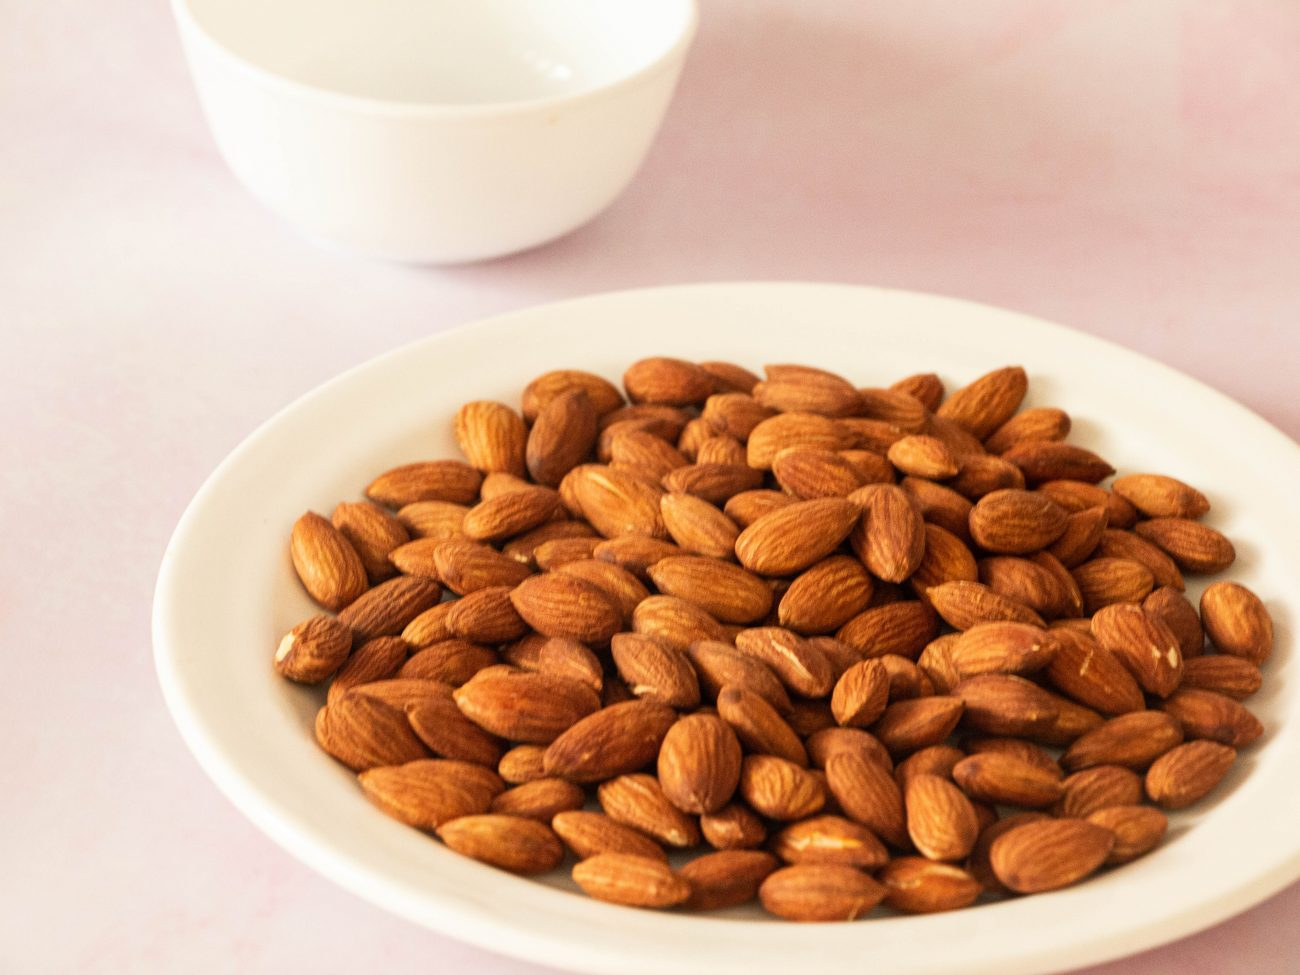 Roasted almonds in Air fryer